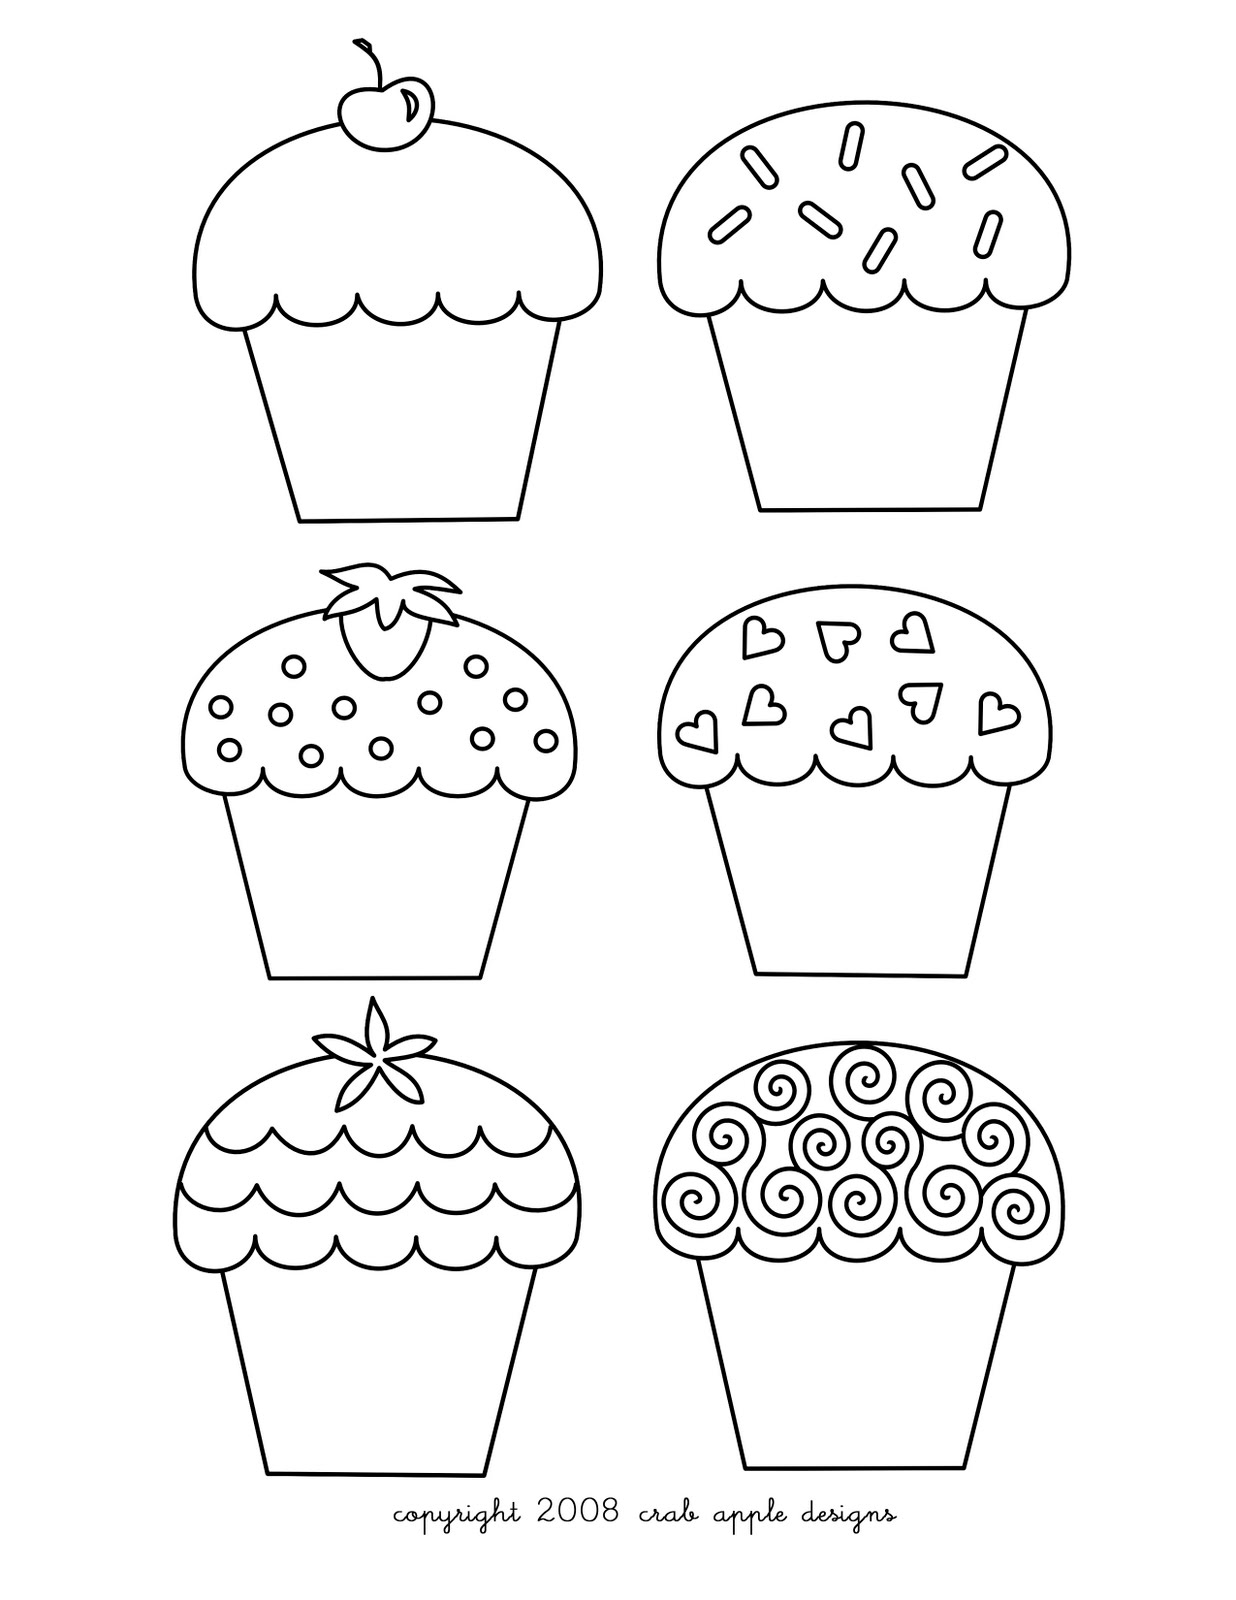 Cupcakes Coloring Pages - Free Printable Pictures Coloring ...